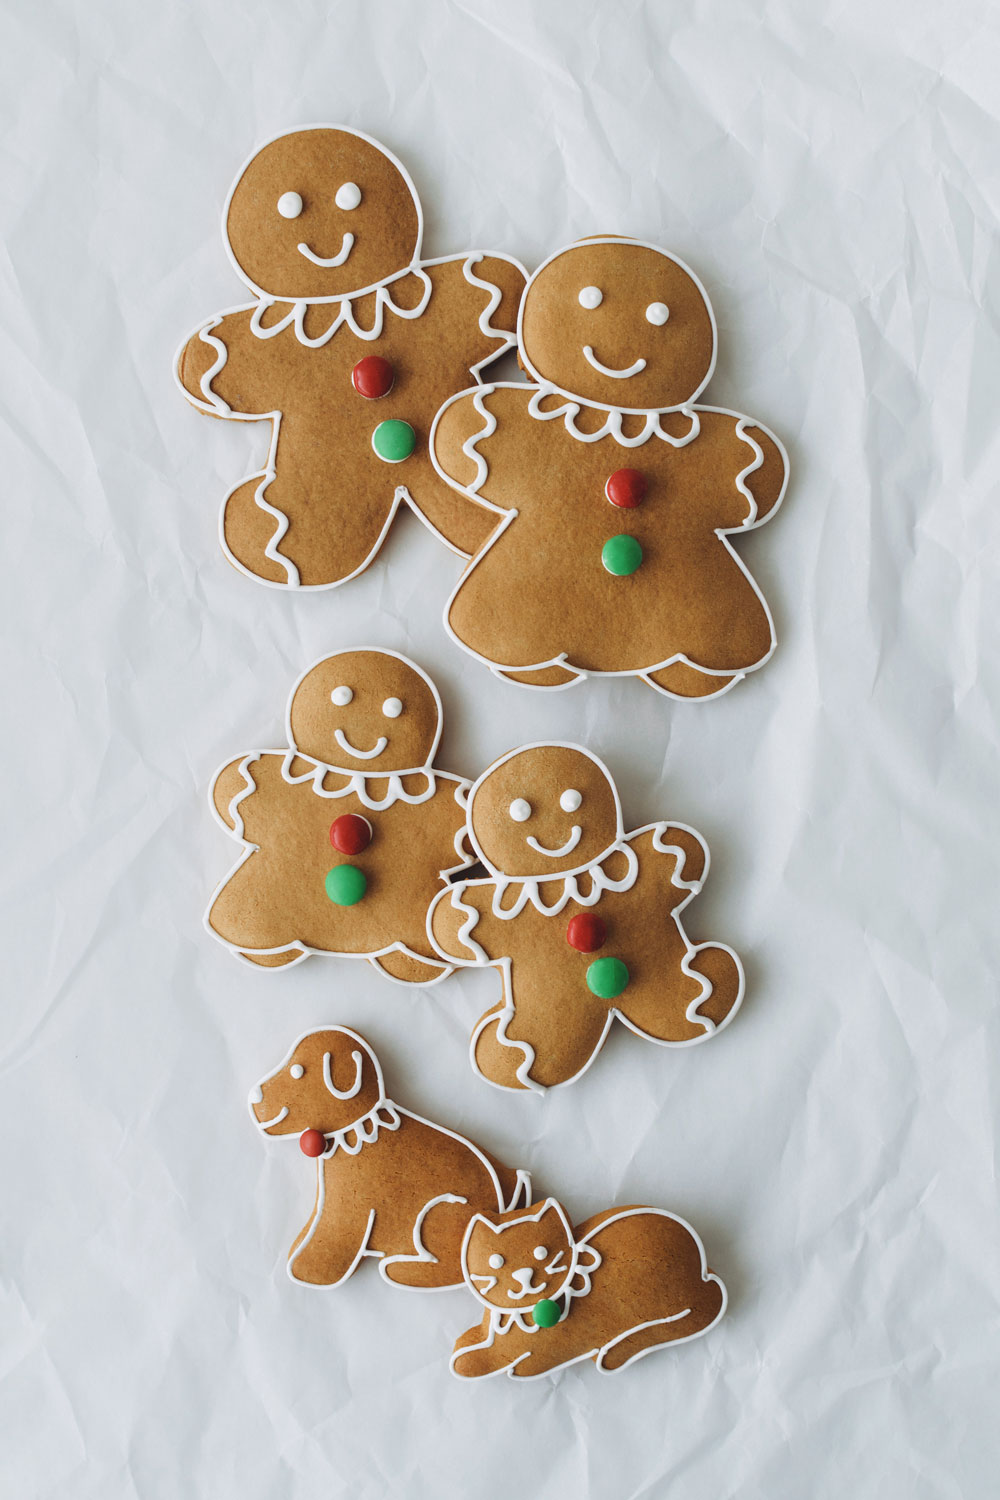 GINGERBREAD PEOPLE + PETS - classic gingerbread cookies decorated with firm royal icing and M&M'slarge $4.25 / medium + pets $3.25